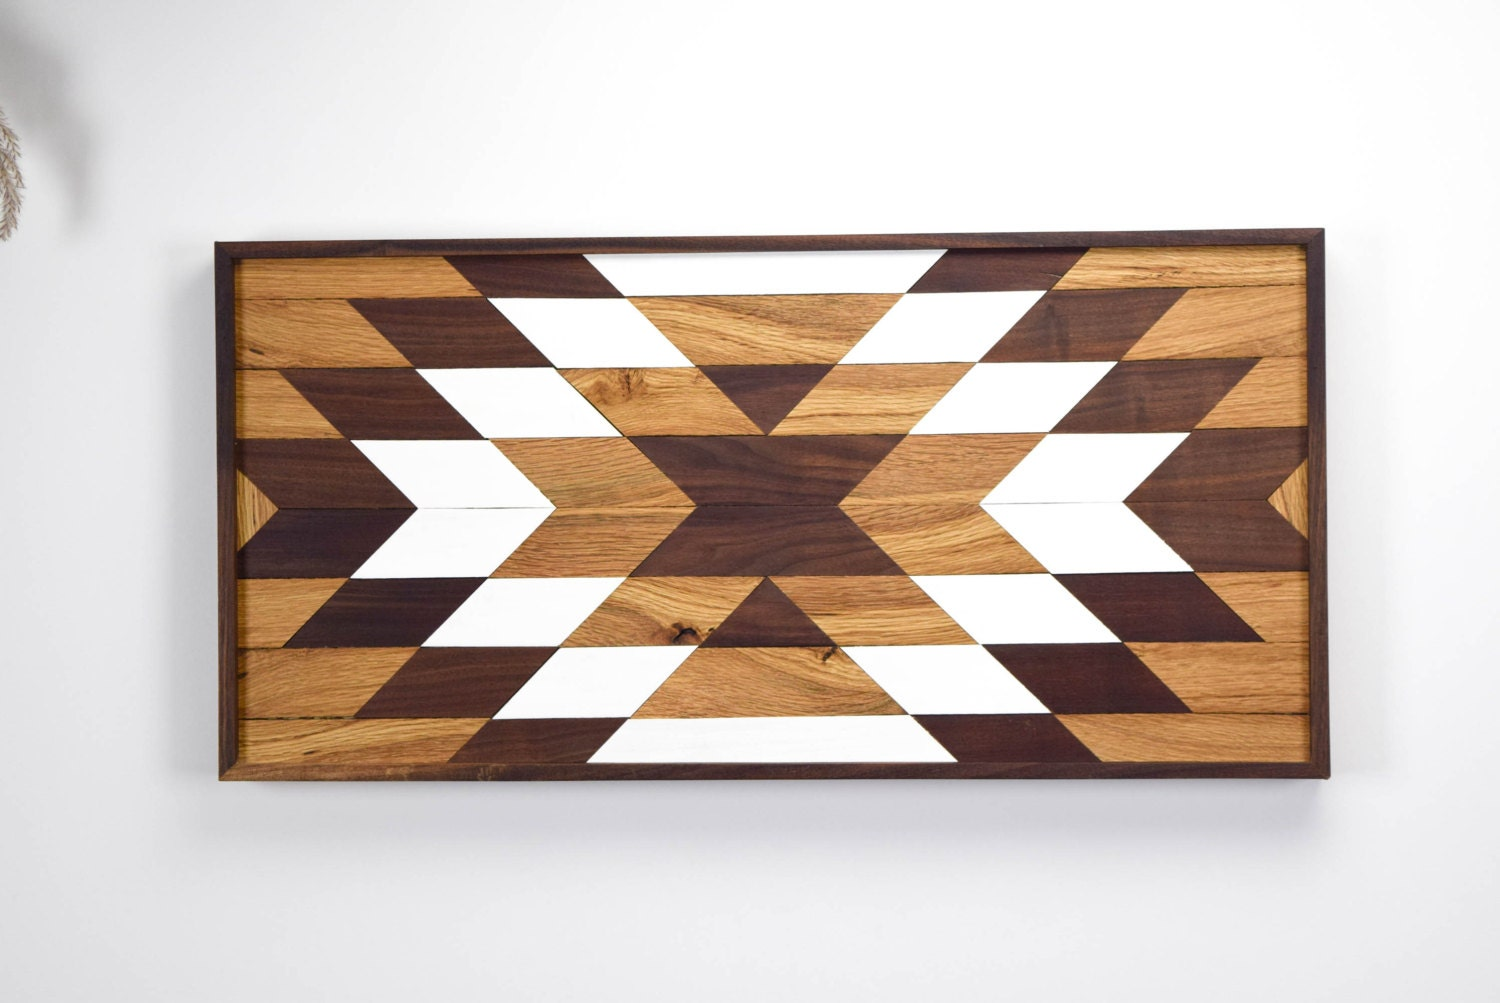 Wood Wall Art Wooden Wall Art Geometric Wood Art Wooden